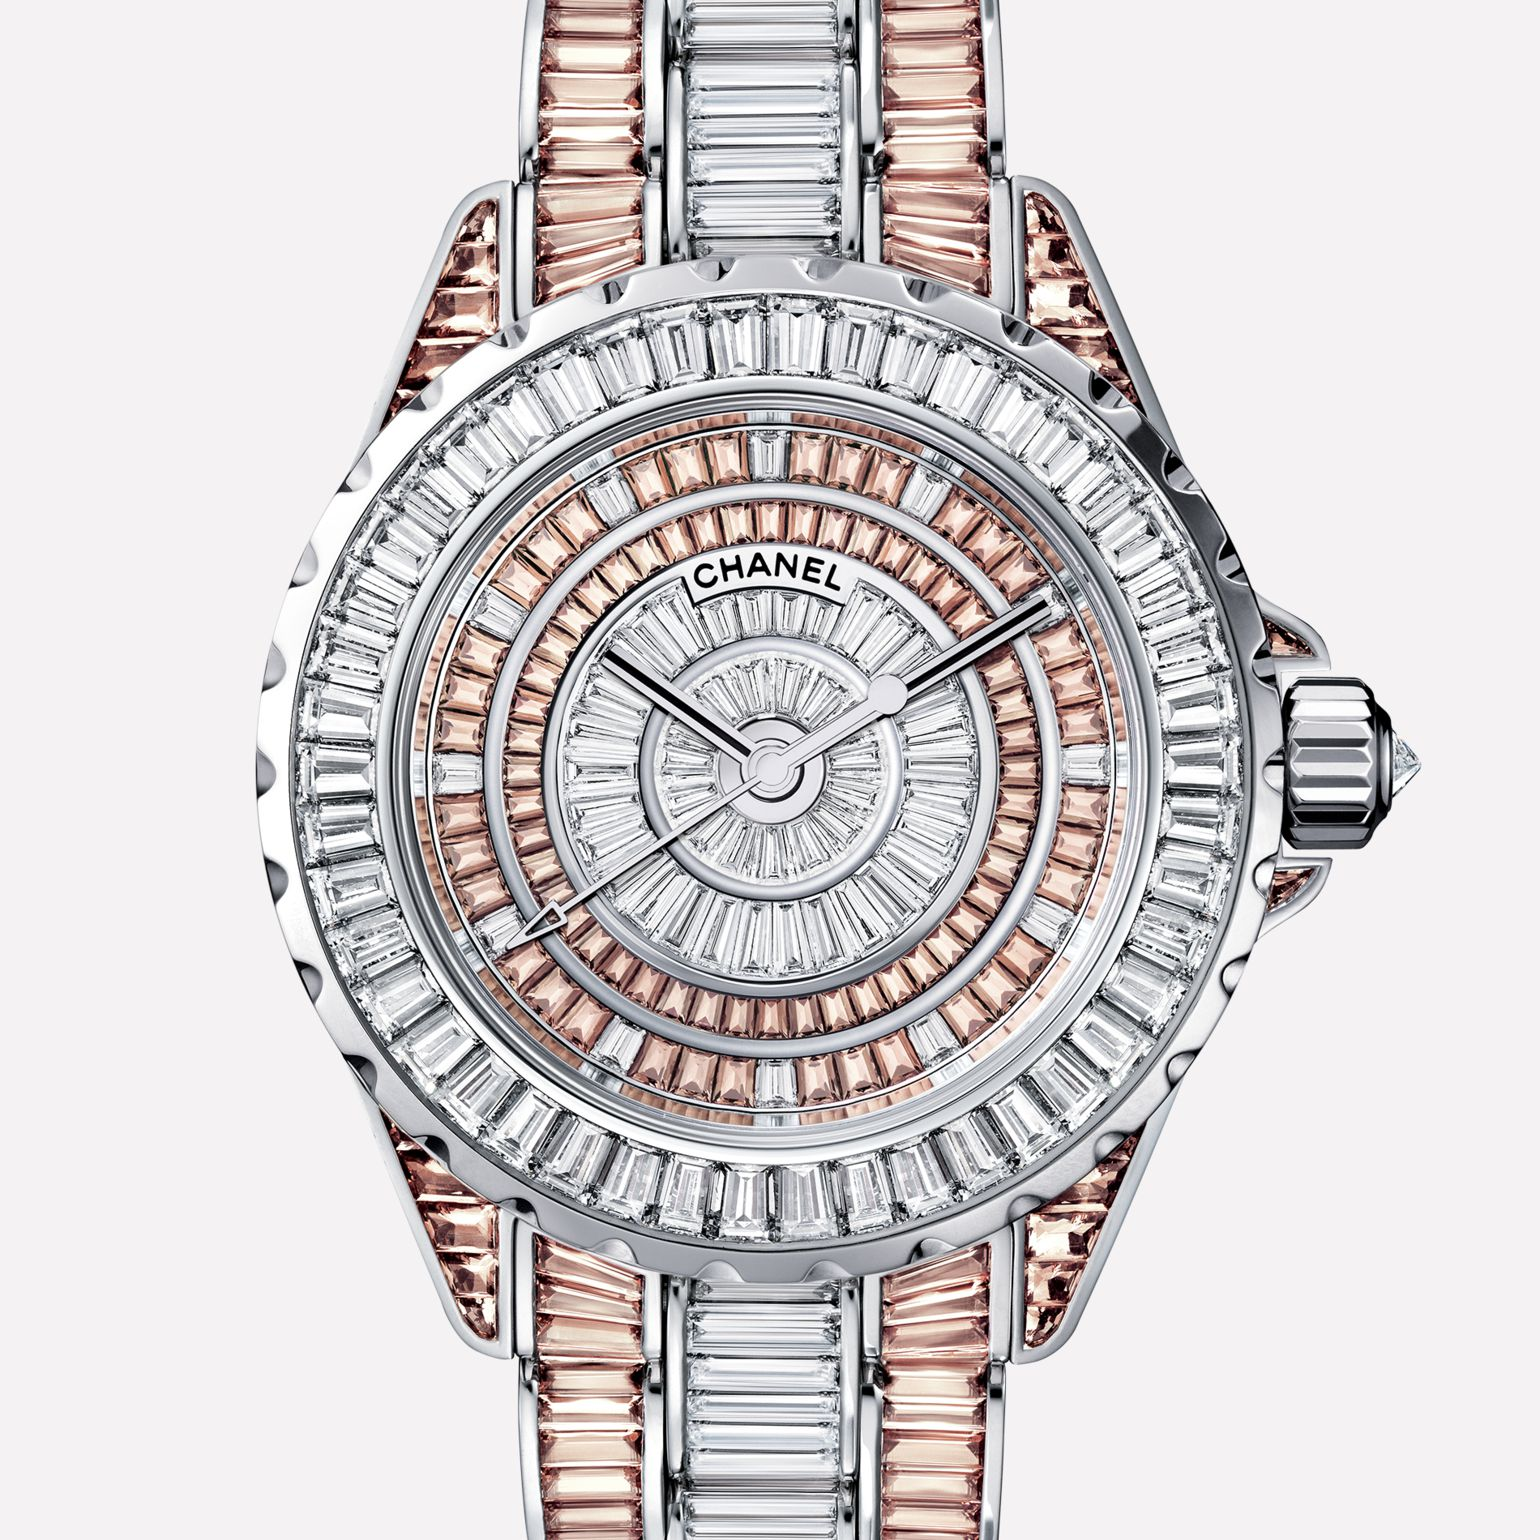 J12 High Jewellery Watch White gold, case, dial, bezel and bracelet set with baguette cut diamonds and cognac sapphires